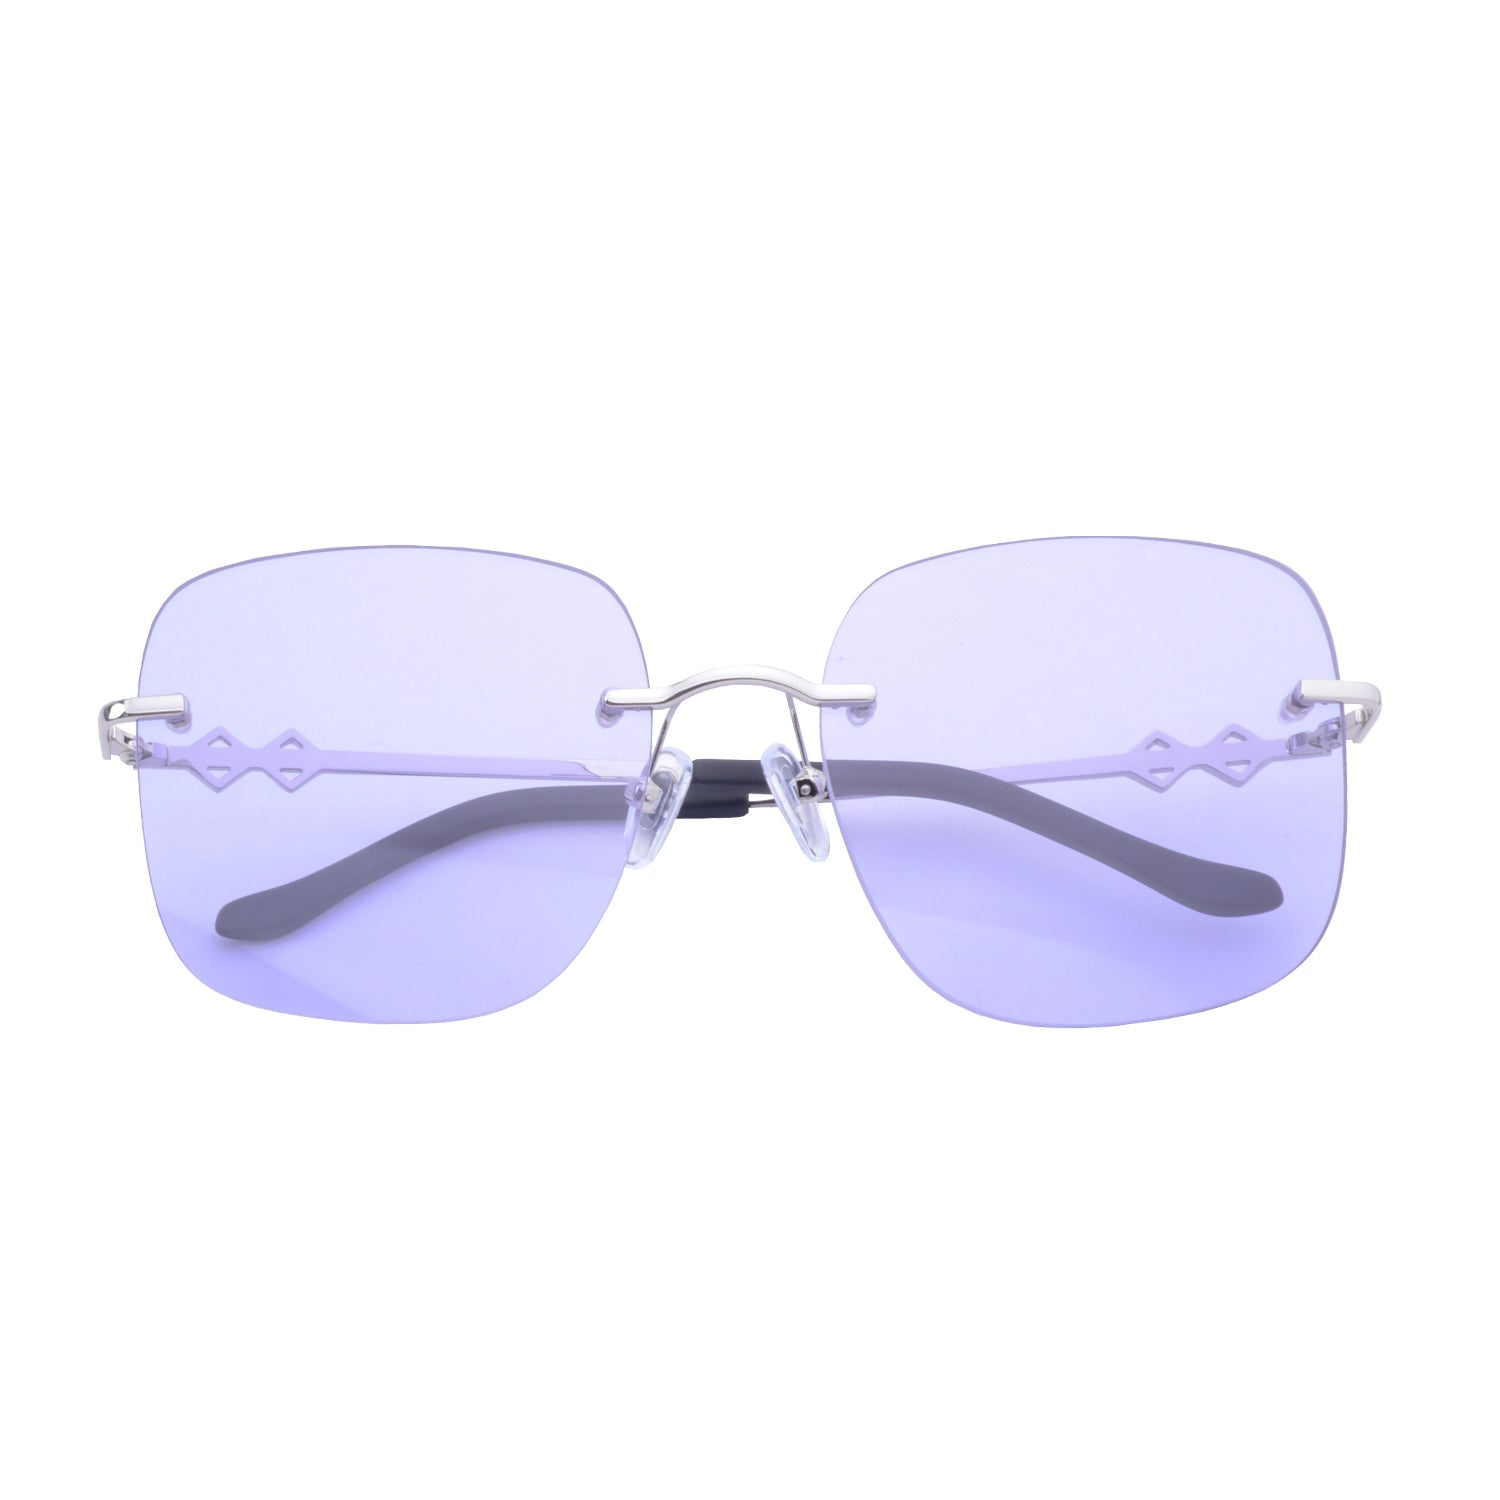 Frameless square sunglasses with violet lenses and silver frames | Metal | Madison | Women's sunglasses | Karen Wazen Eyewear